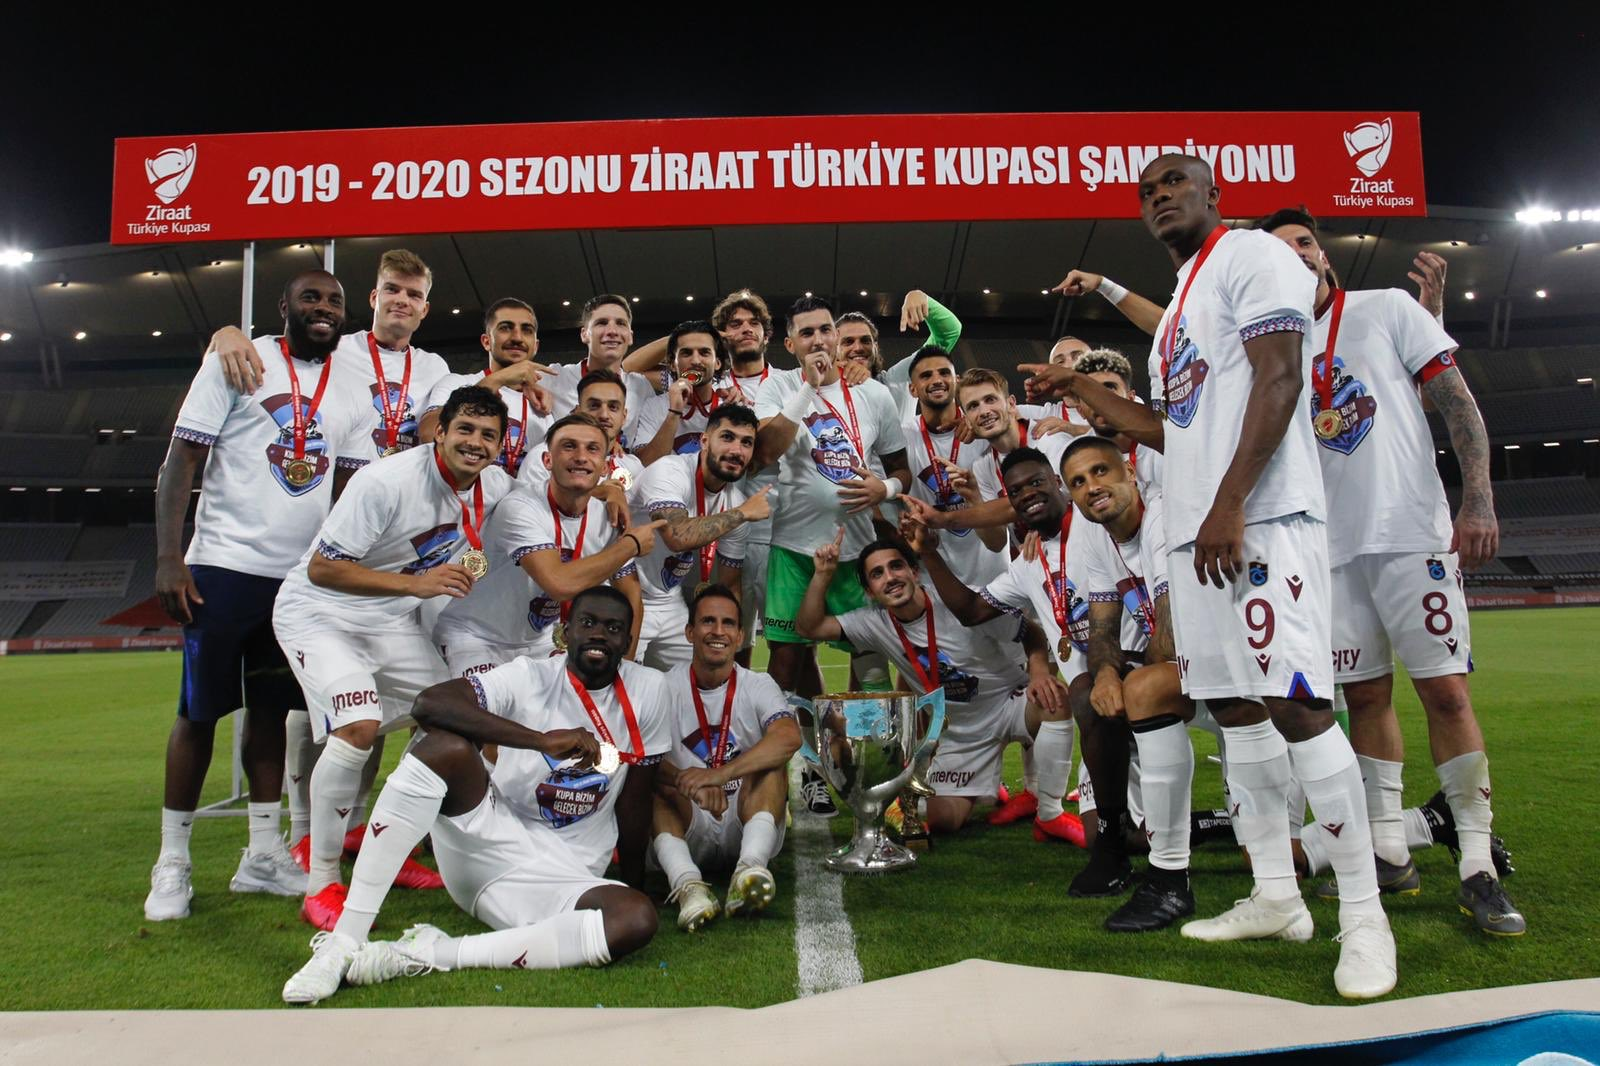 Mikel Congratulates Former Club Trabzonspor On Turkish FA Cup Win